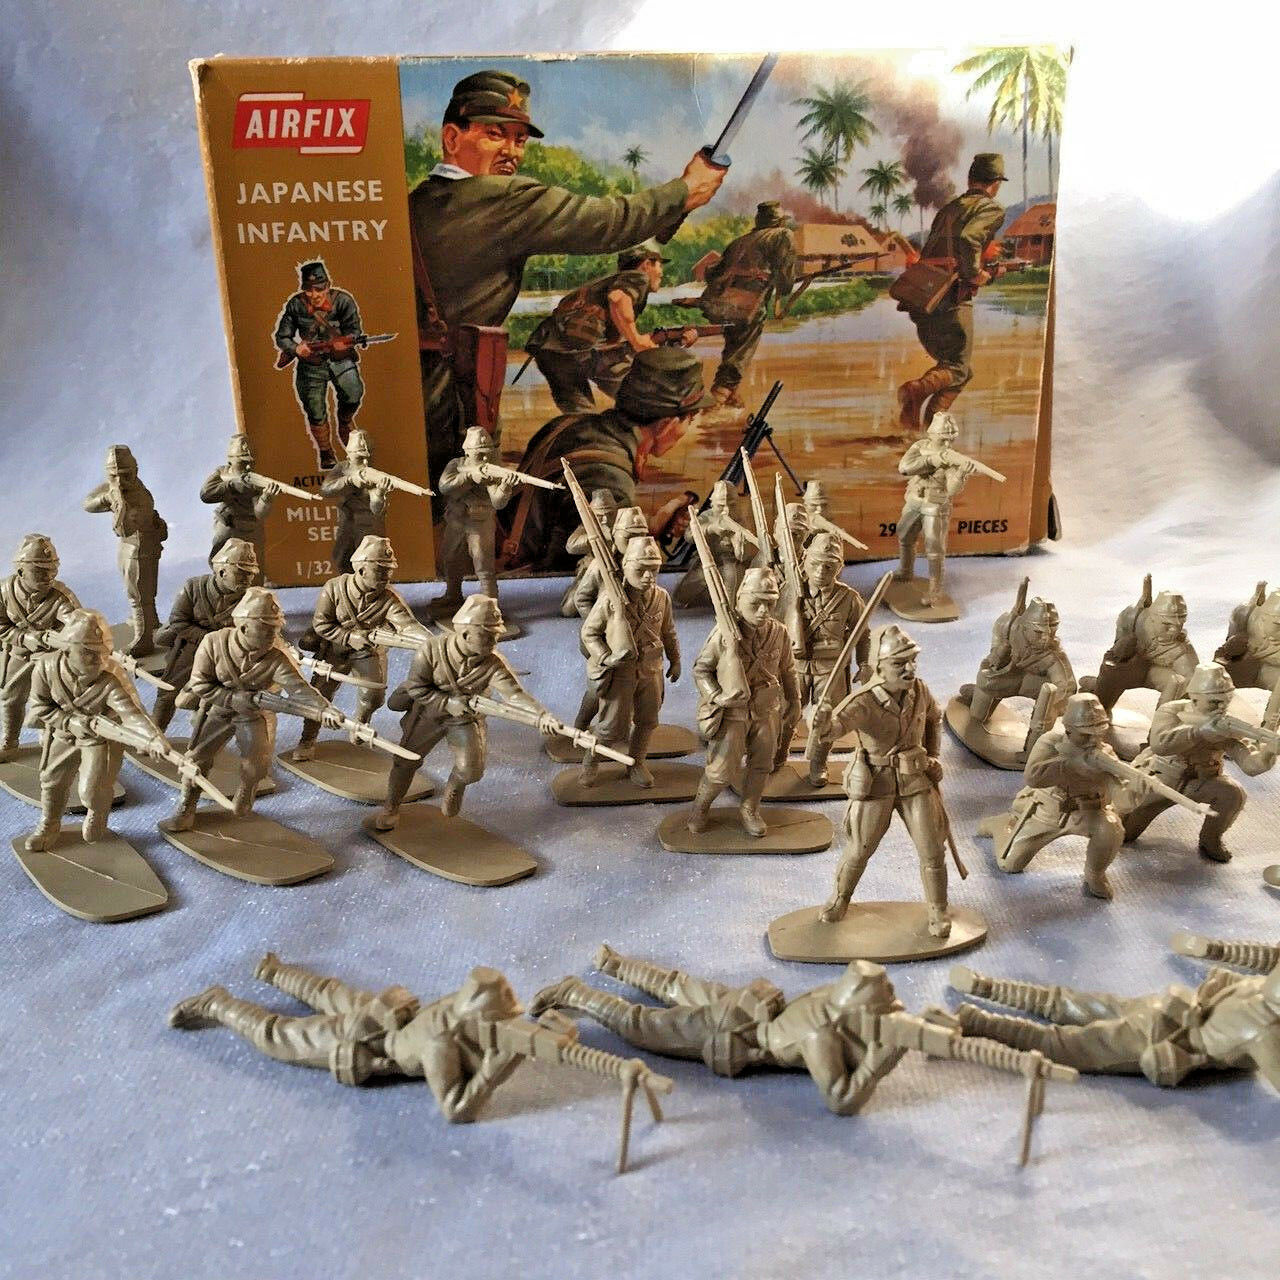 Excellent Vintage Airfix 1 32 Scale WW2 JAPANESE INFANTRY. Early 1970's